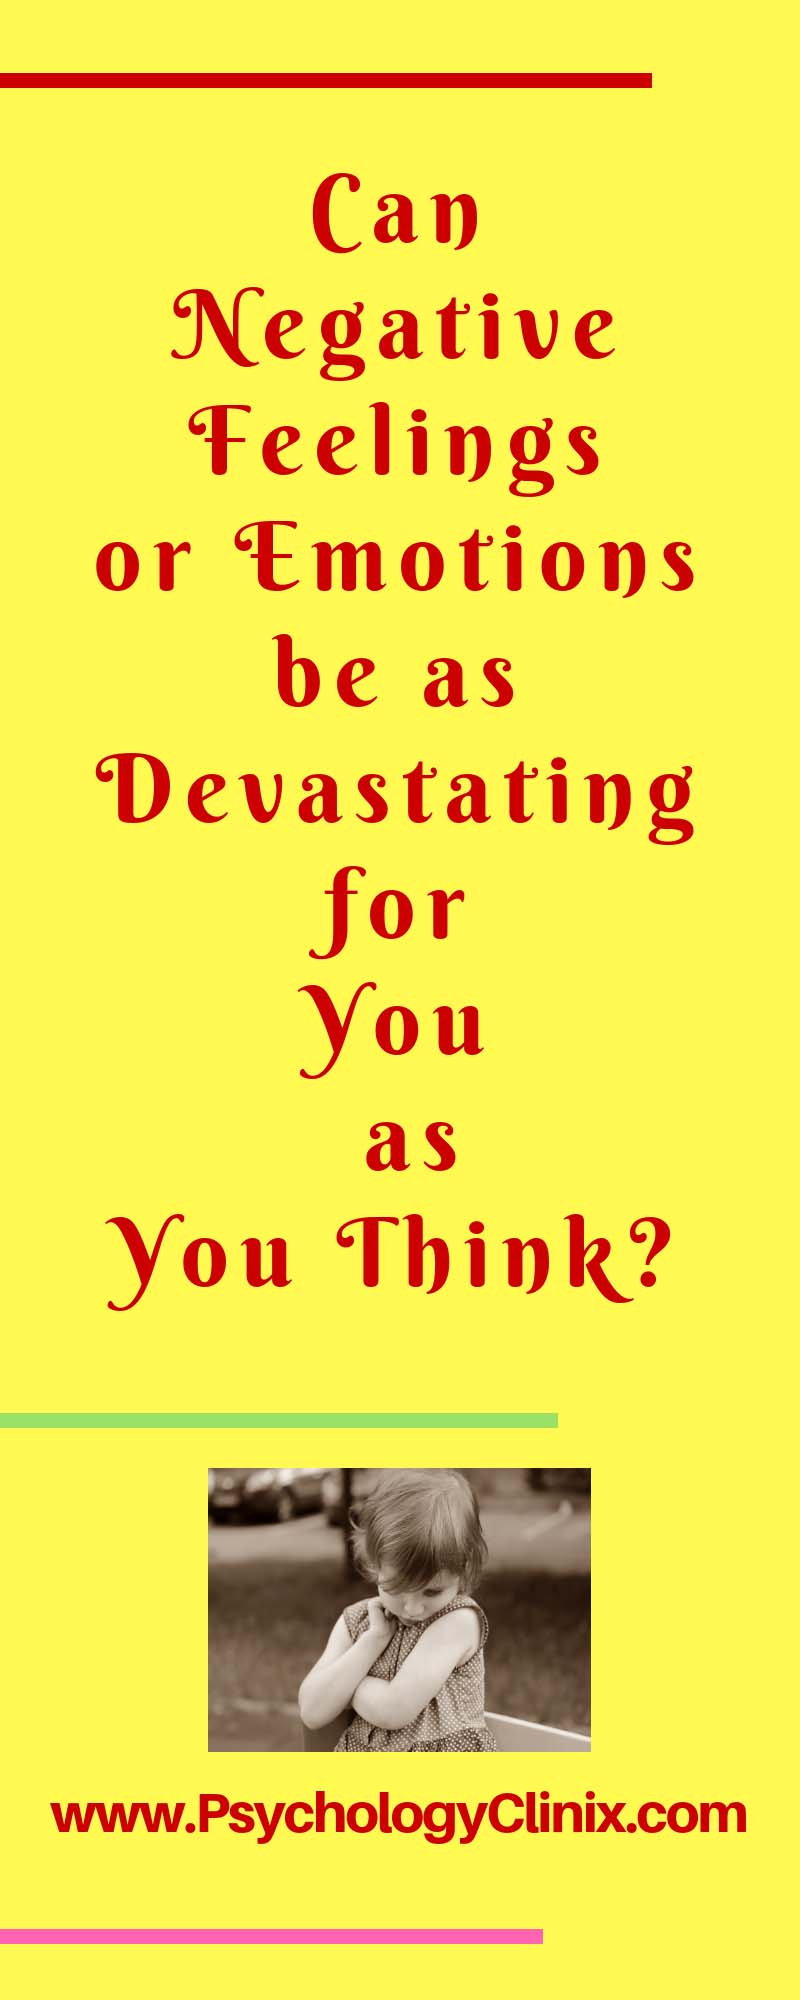 Can Negative Feelings or Emotions be as Devastating for Your as You Think